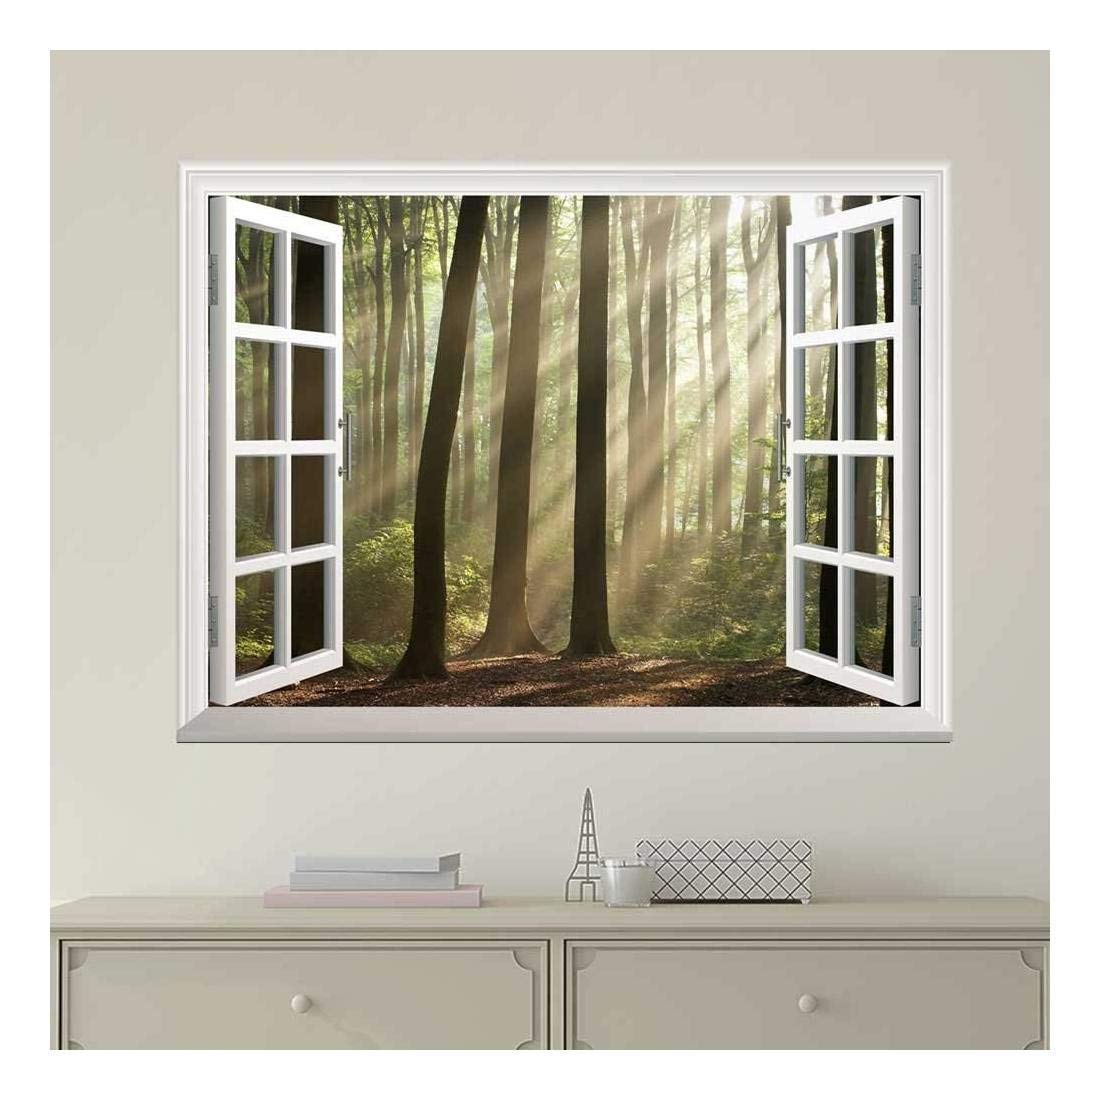 wall26 Modern White Window Looking Out Into a Foggy Forest with Rays Peeking Through - Wall Mural, Removable Sticker, Home Decor - 36x48 inches